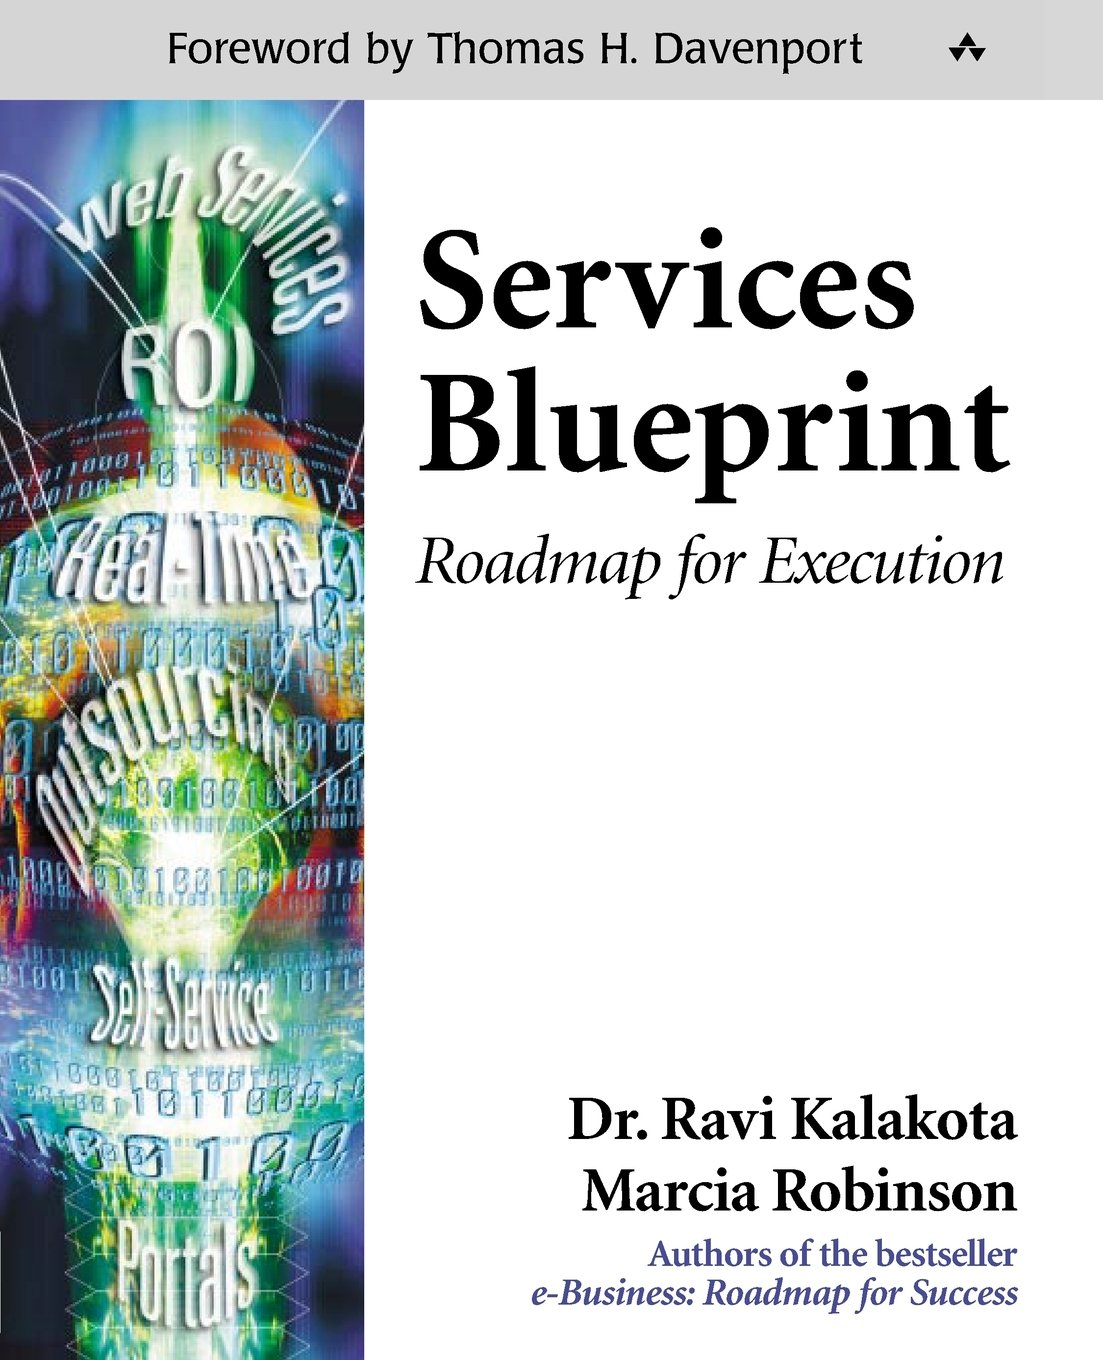 Amazon services blueprint roadmap for execution amazon services blueprint roadmap for execution 9780321150394 ravi kalakota marcia robinson books malvernweather Image collections